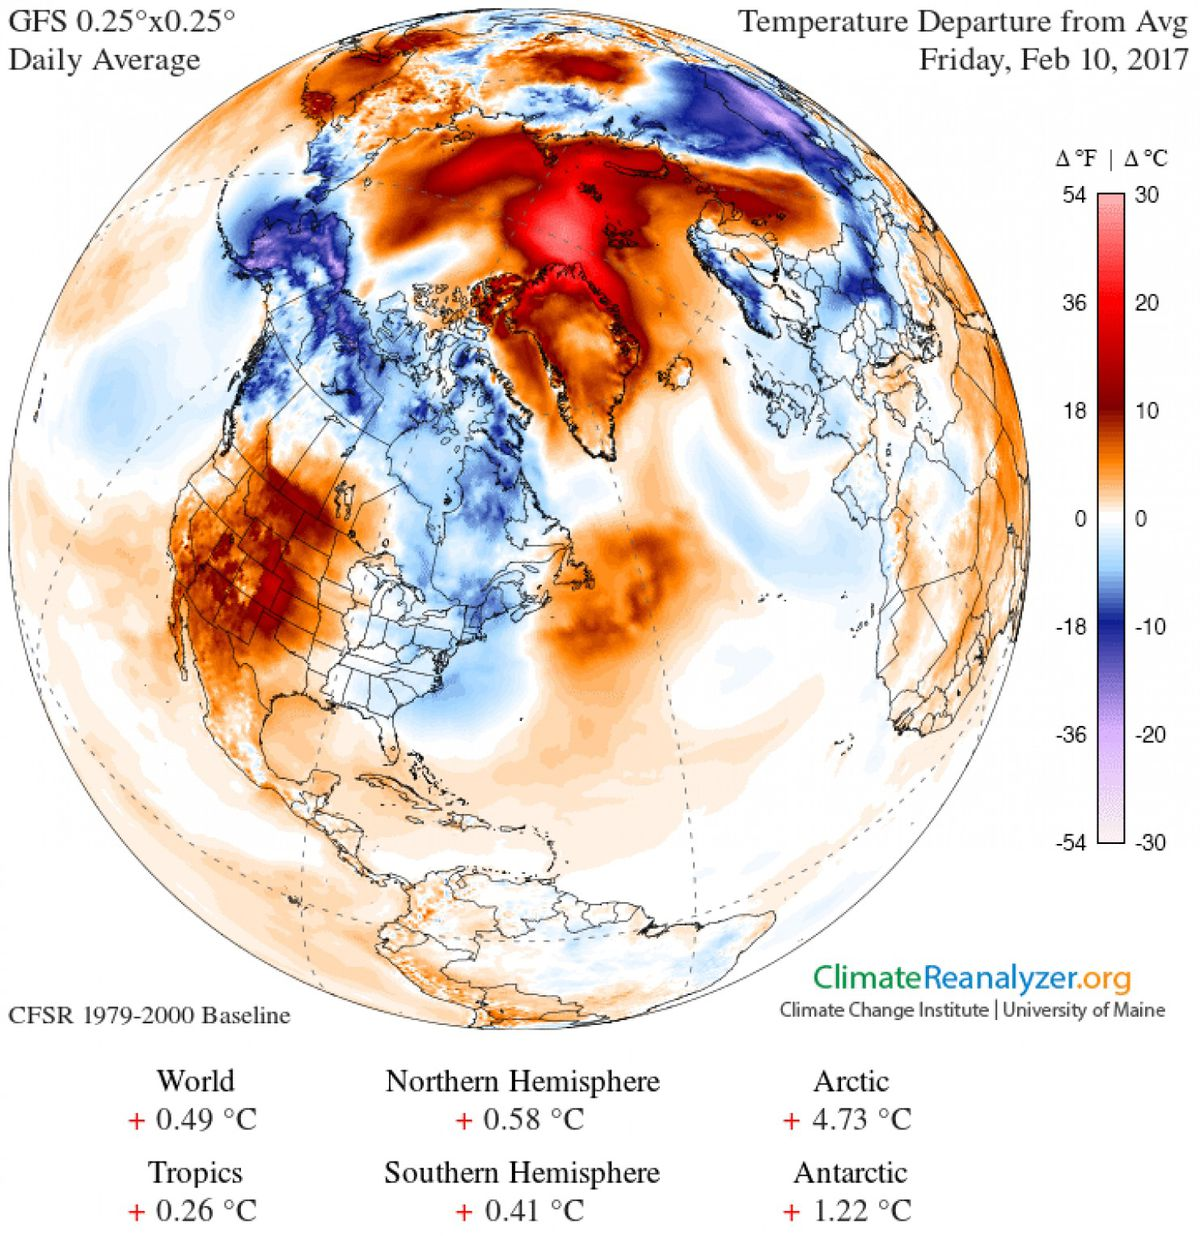 An image obtained using the Climate Reanalyzer from the Climate Change Institute at the University of Maine, shows temperature anomalies in the Arctic. (Courtesy University of Maine)